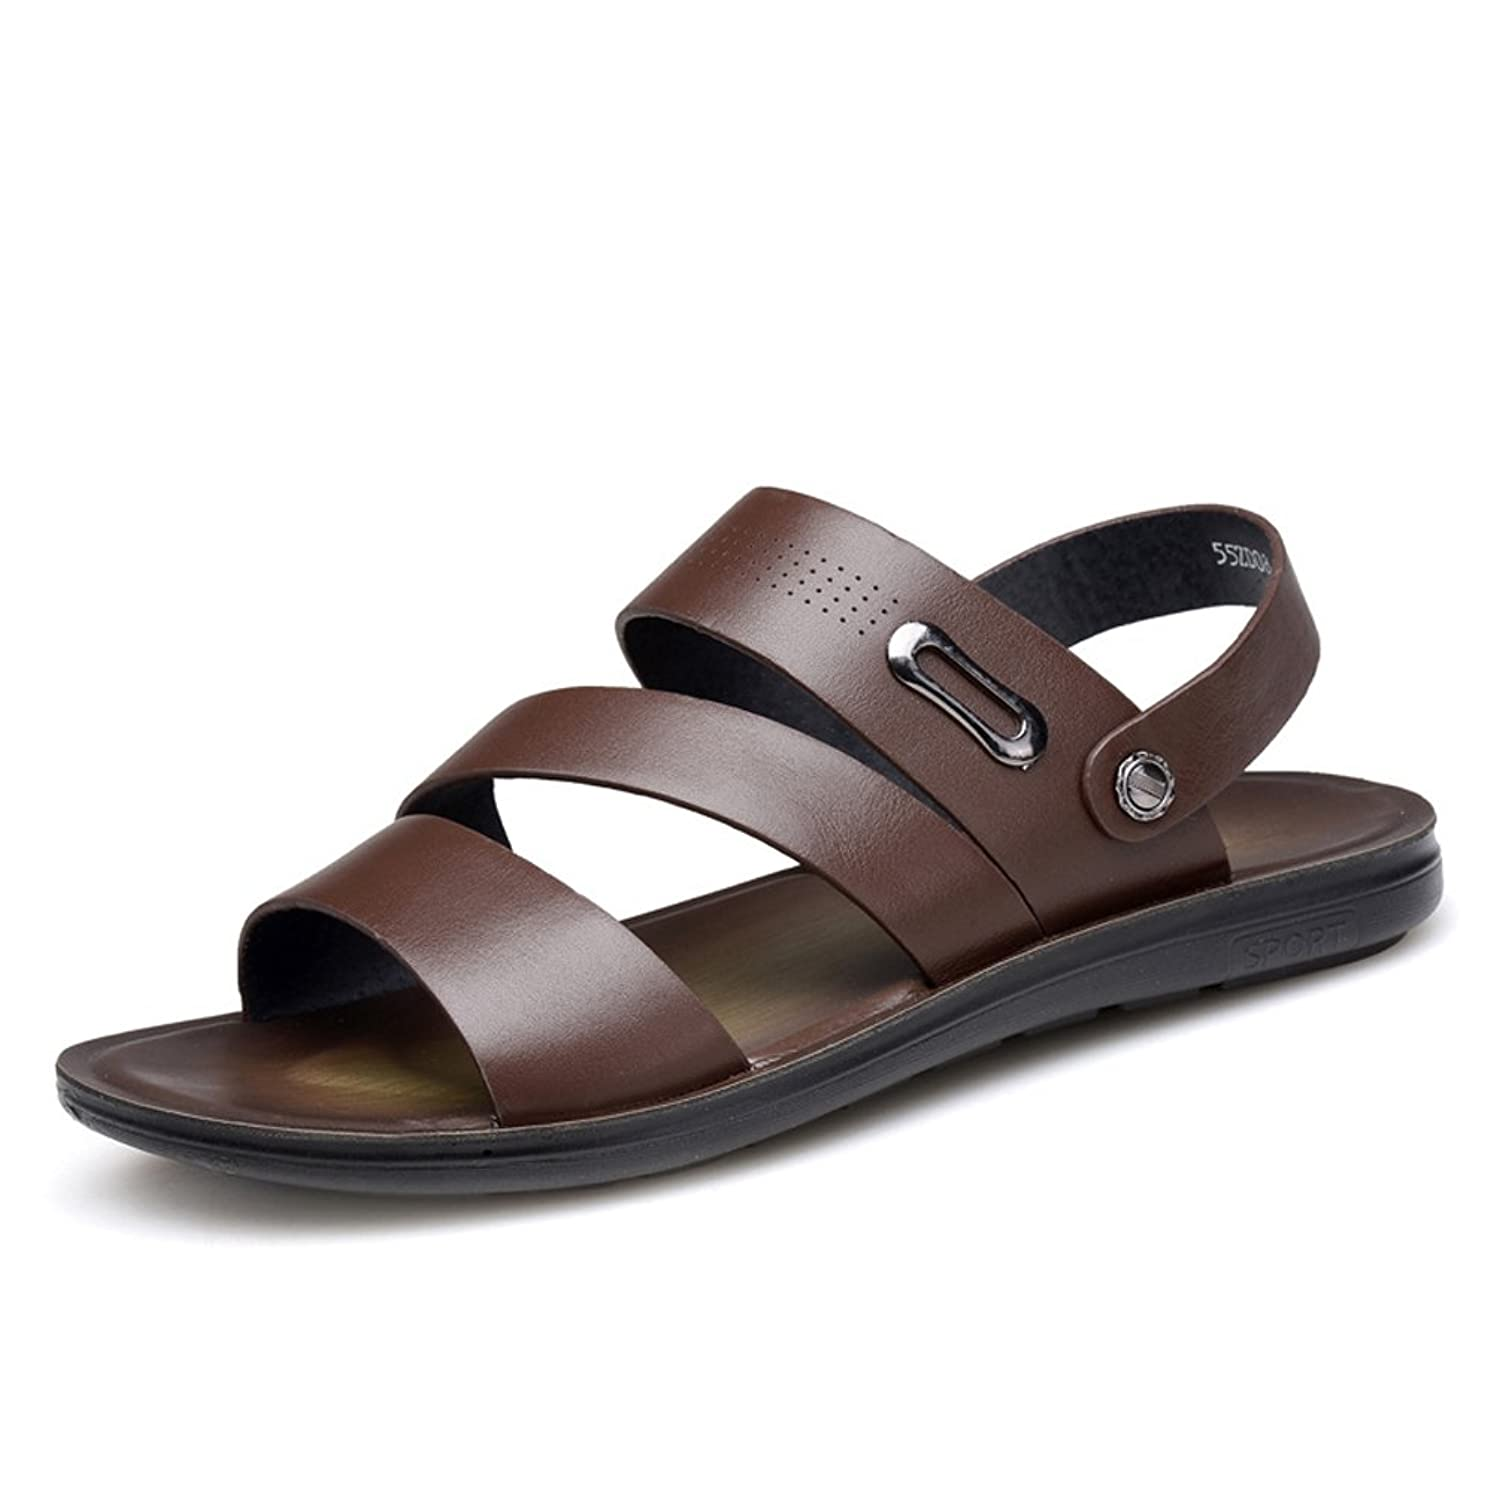 AFS JEEP Men's Open Toe Wide Strap Cross Leather Dress Sandal